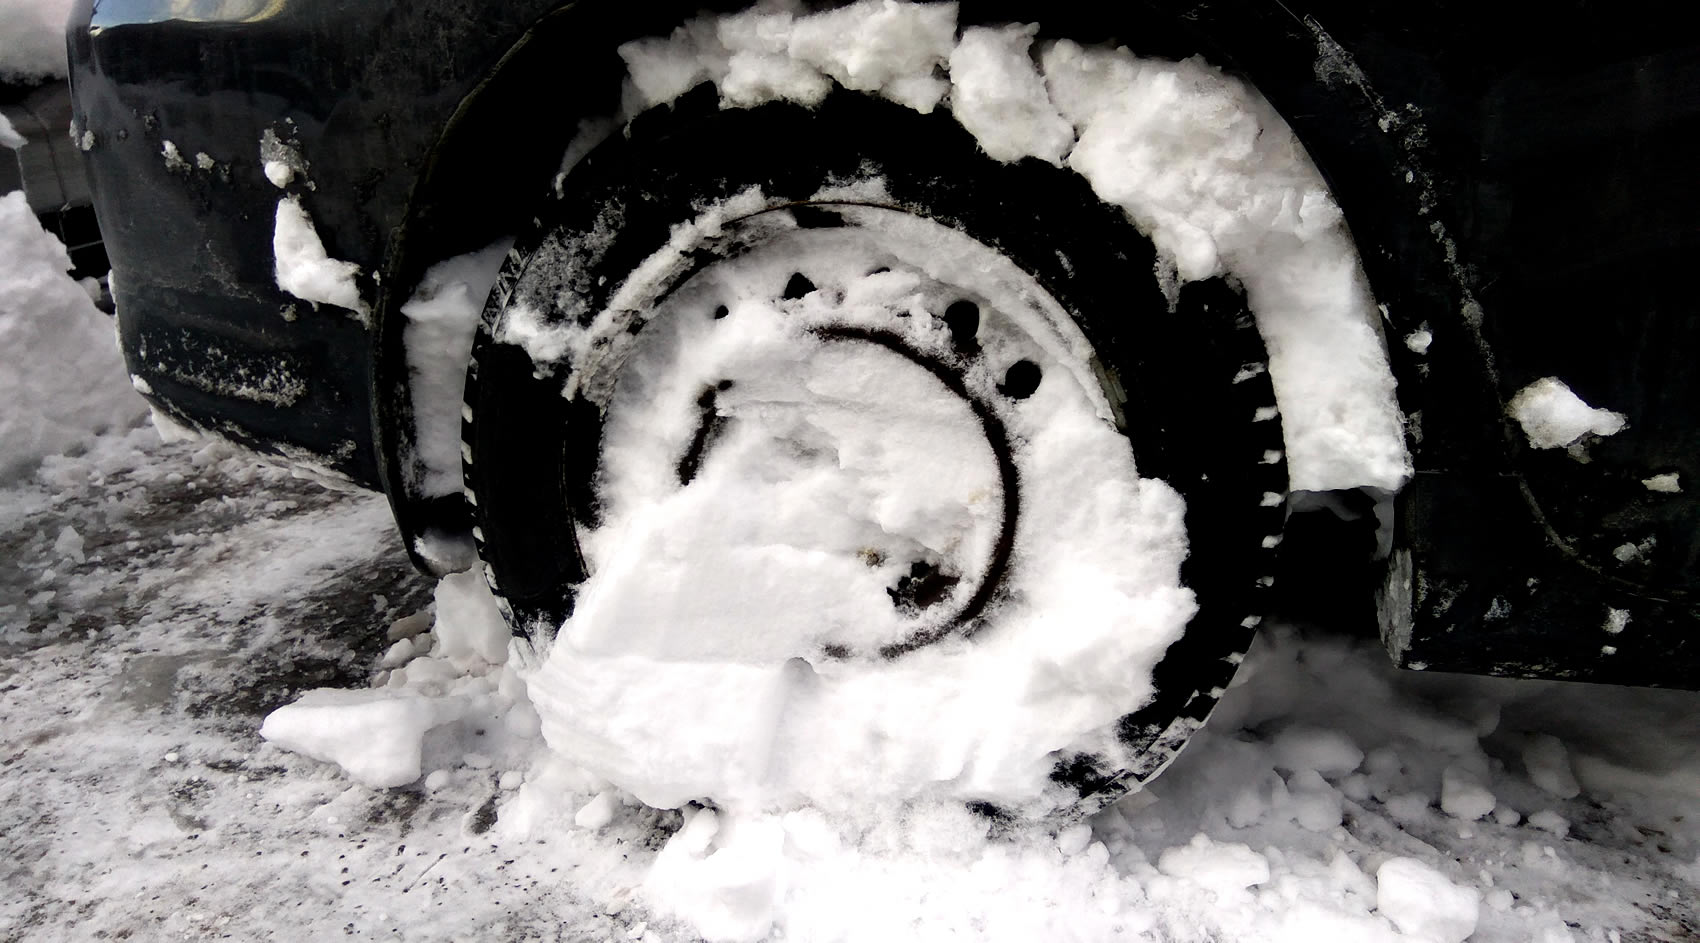 Hyundai Lease Specials >> What To Do If You Get Stuck in Snow/Ice • LeaseCosts Canada